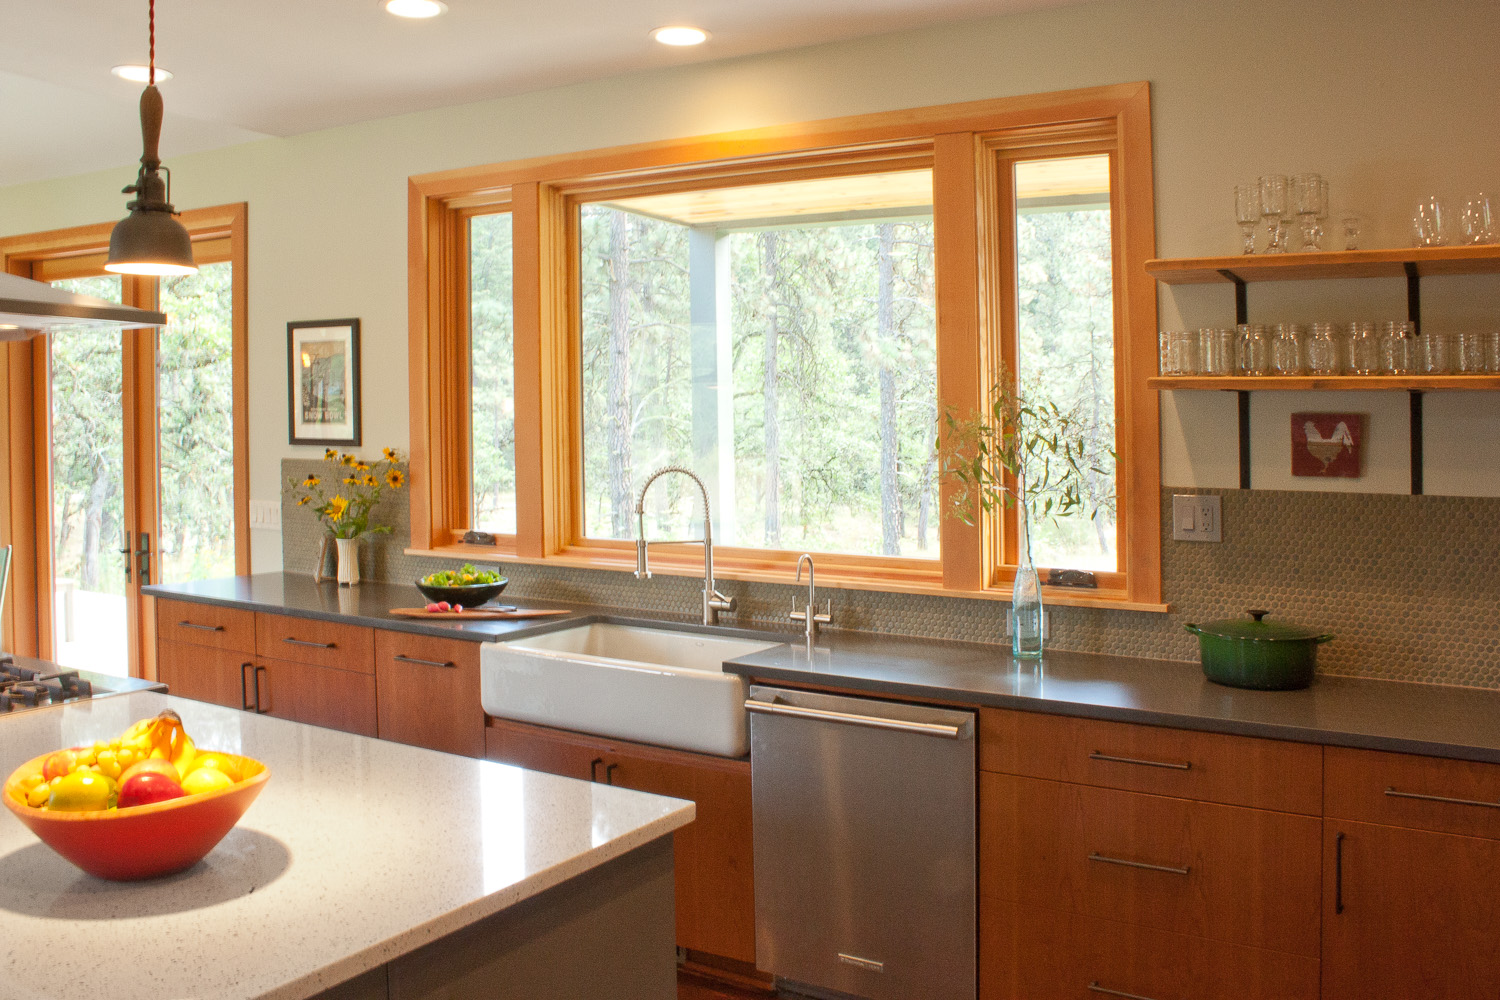 Hood River kitchen 1.jpg